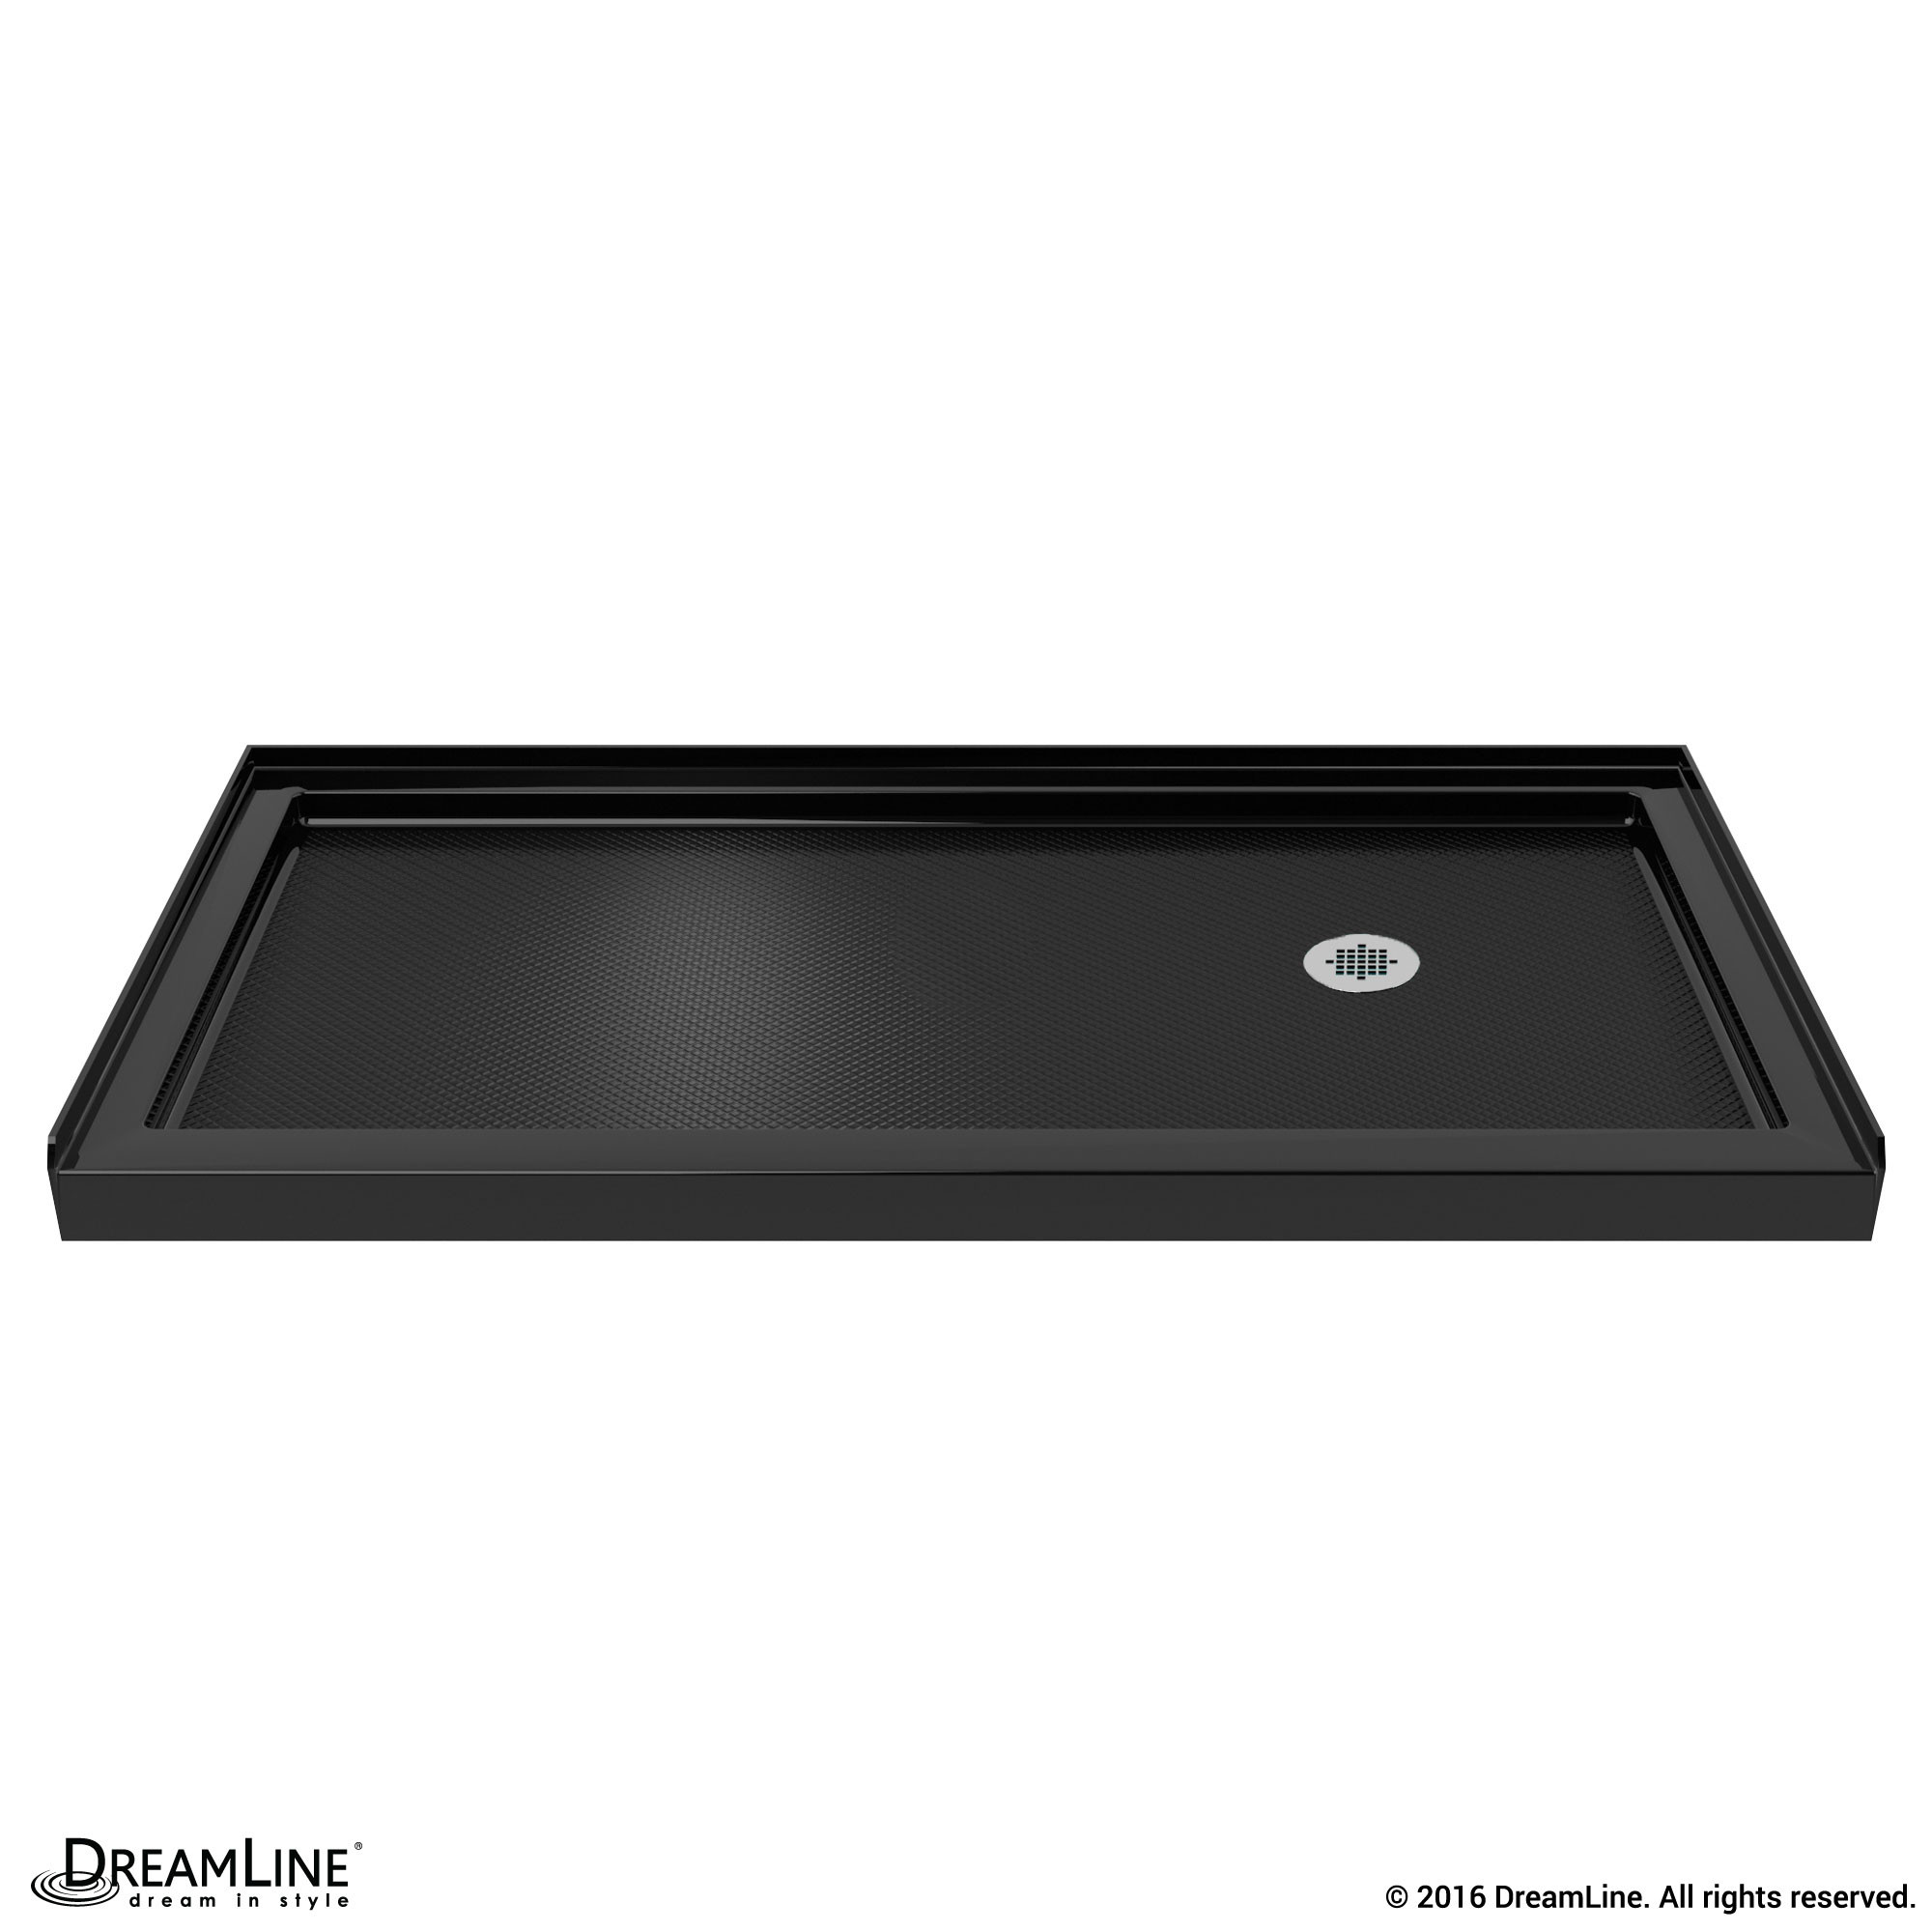 DreamLine DLT-1130602-88 SlimLine 30 Inch by 60 Inch Single Threshold Shower Base In Black Color Right Hand Drain